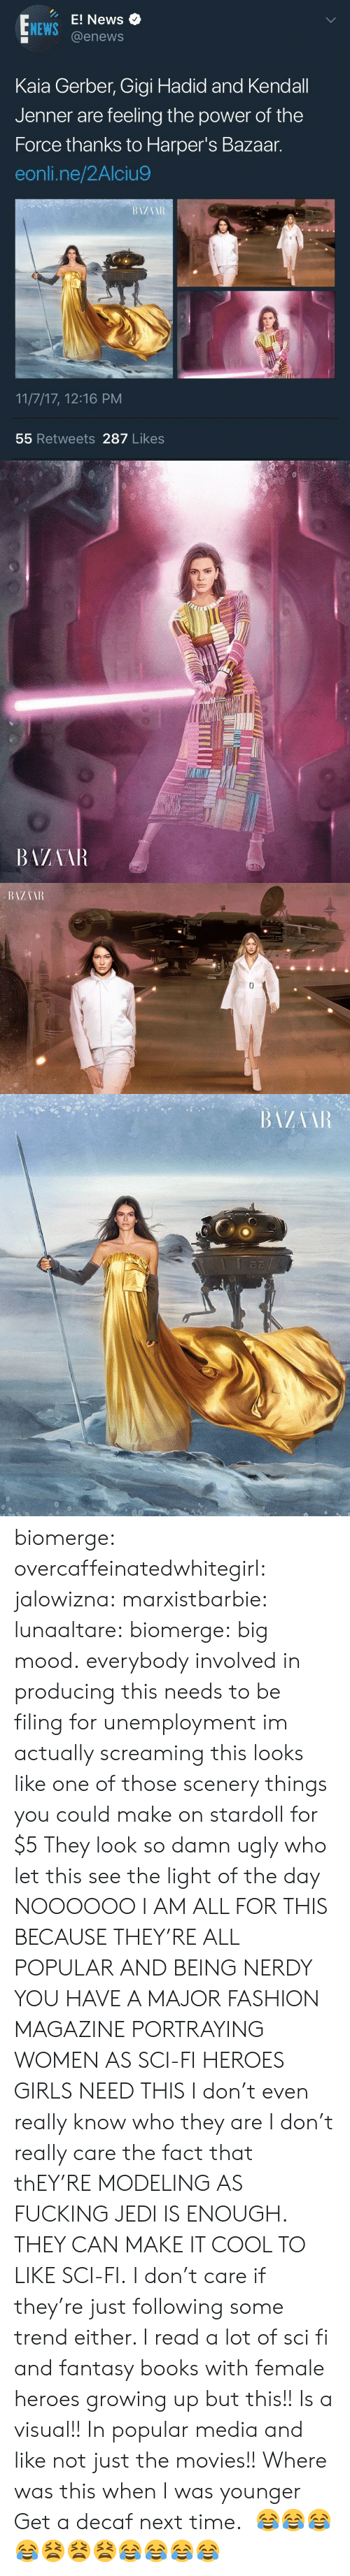 E News: E! News  @enews  NEWS  Kaia Gerber, Gigi Hadid and Kendall  Jenner are feeling the power of the  Force thanks to Harper's Bazaar.  eonli.ne/2Alciu9  11/7/17, 12:16 PM  55 Retweets 287 Likes   BAZAAR biomerge: overcaffeinatedwhitegirl:  jalowizna:   marxistbarbie:   lunaaltare:  biomerge:  big mood.  everybody involved in producing this needs to be filing for unemployment  im actually screaming this looks like one of those scenery things you could make on stardoll for $5   They look so damn ugly who let this see the light of the day   NOOOOOO I AM ALL FOR THIS BECAUSE THEY'RE ALL POPULAR AND BEING NERDY YOU HAVE A MAJOR FASHION MAGAZINE PORTRAYING WOMEN AS SCI-FI HEROES GIRLS NEED THIS I don't even really know who they are I don't really care the fact that thEY'RE MODELING AS FUCKING JEDI IS ENOUGH. THEY CAN MAKE IT COOL TO LIKE SCI-FI. I don't care if they're just following some trend either. I read a lot of sci fi and fantasy books with female heroes growing up but this!! Is a visual!! In popular media and like not just the movies!! Where was this when I was younger  Get a decaf next time.   😂😂😂😂😫😫😫😂😂😂😂